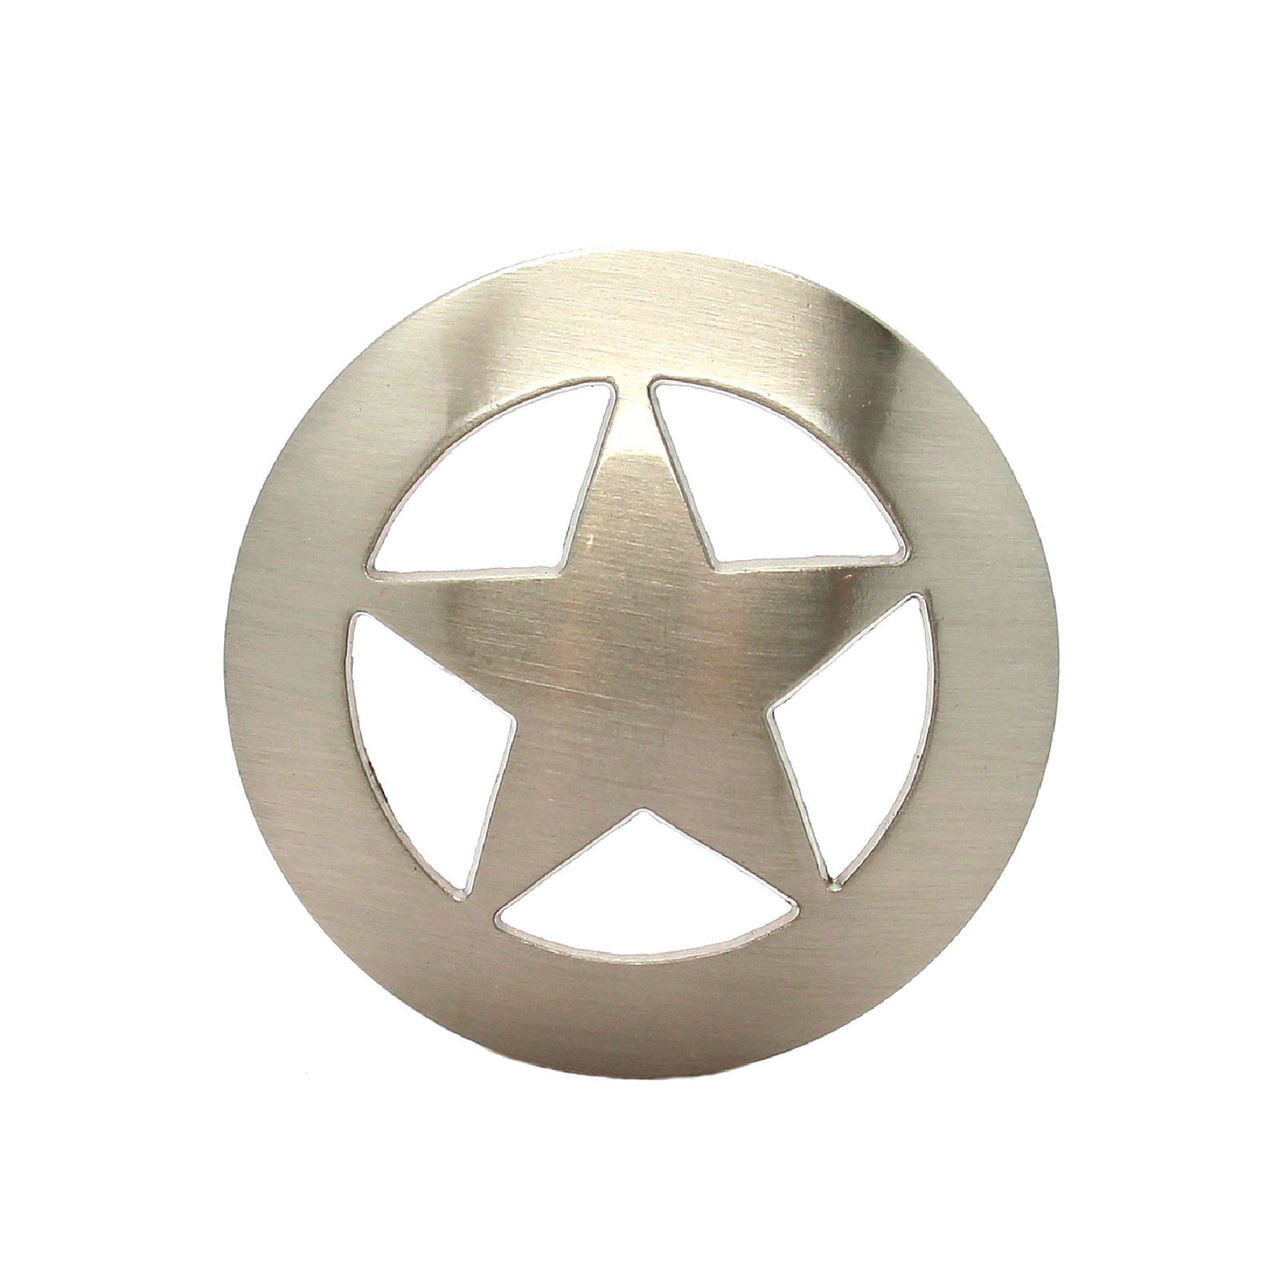 "Brushed Nickel Smooth Star Concho 3/4"" 7536-05 by Stecksstore"